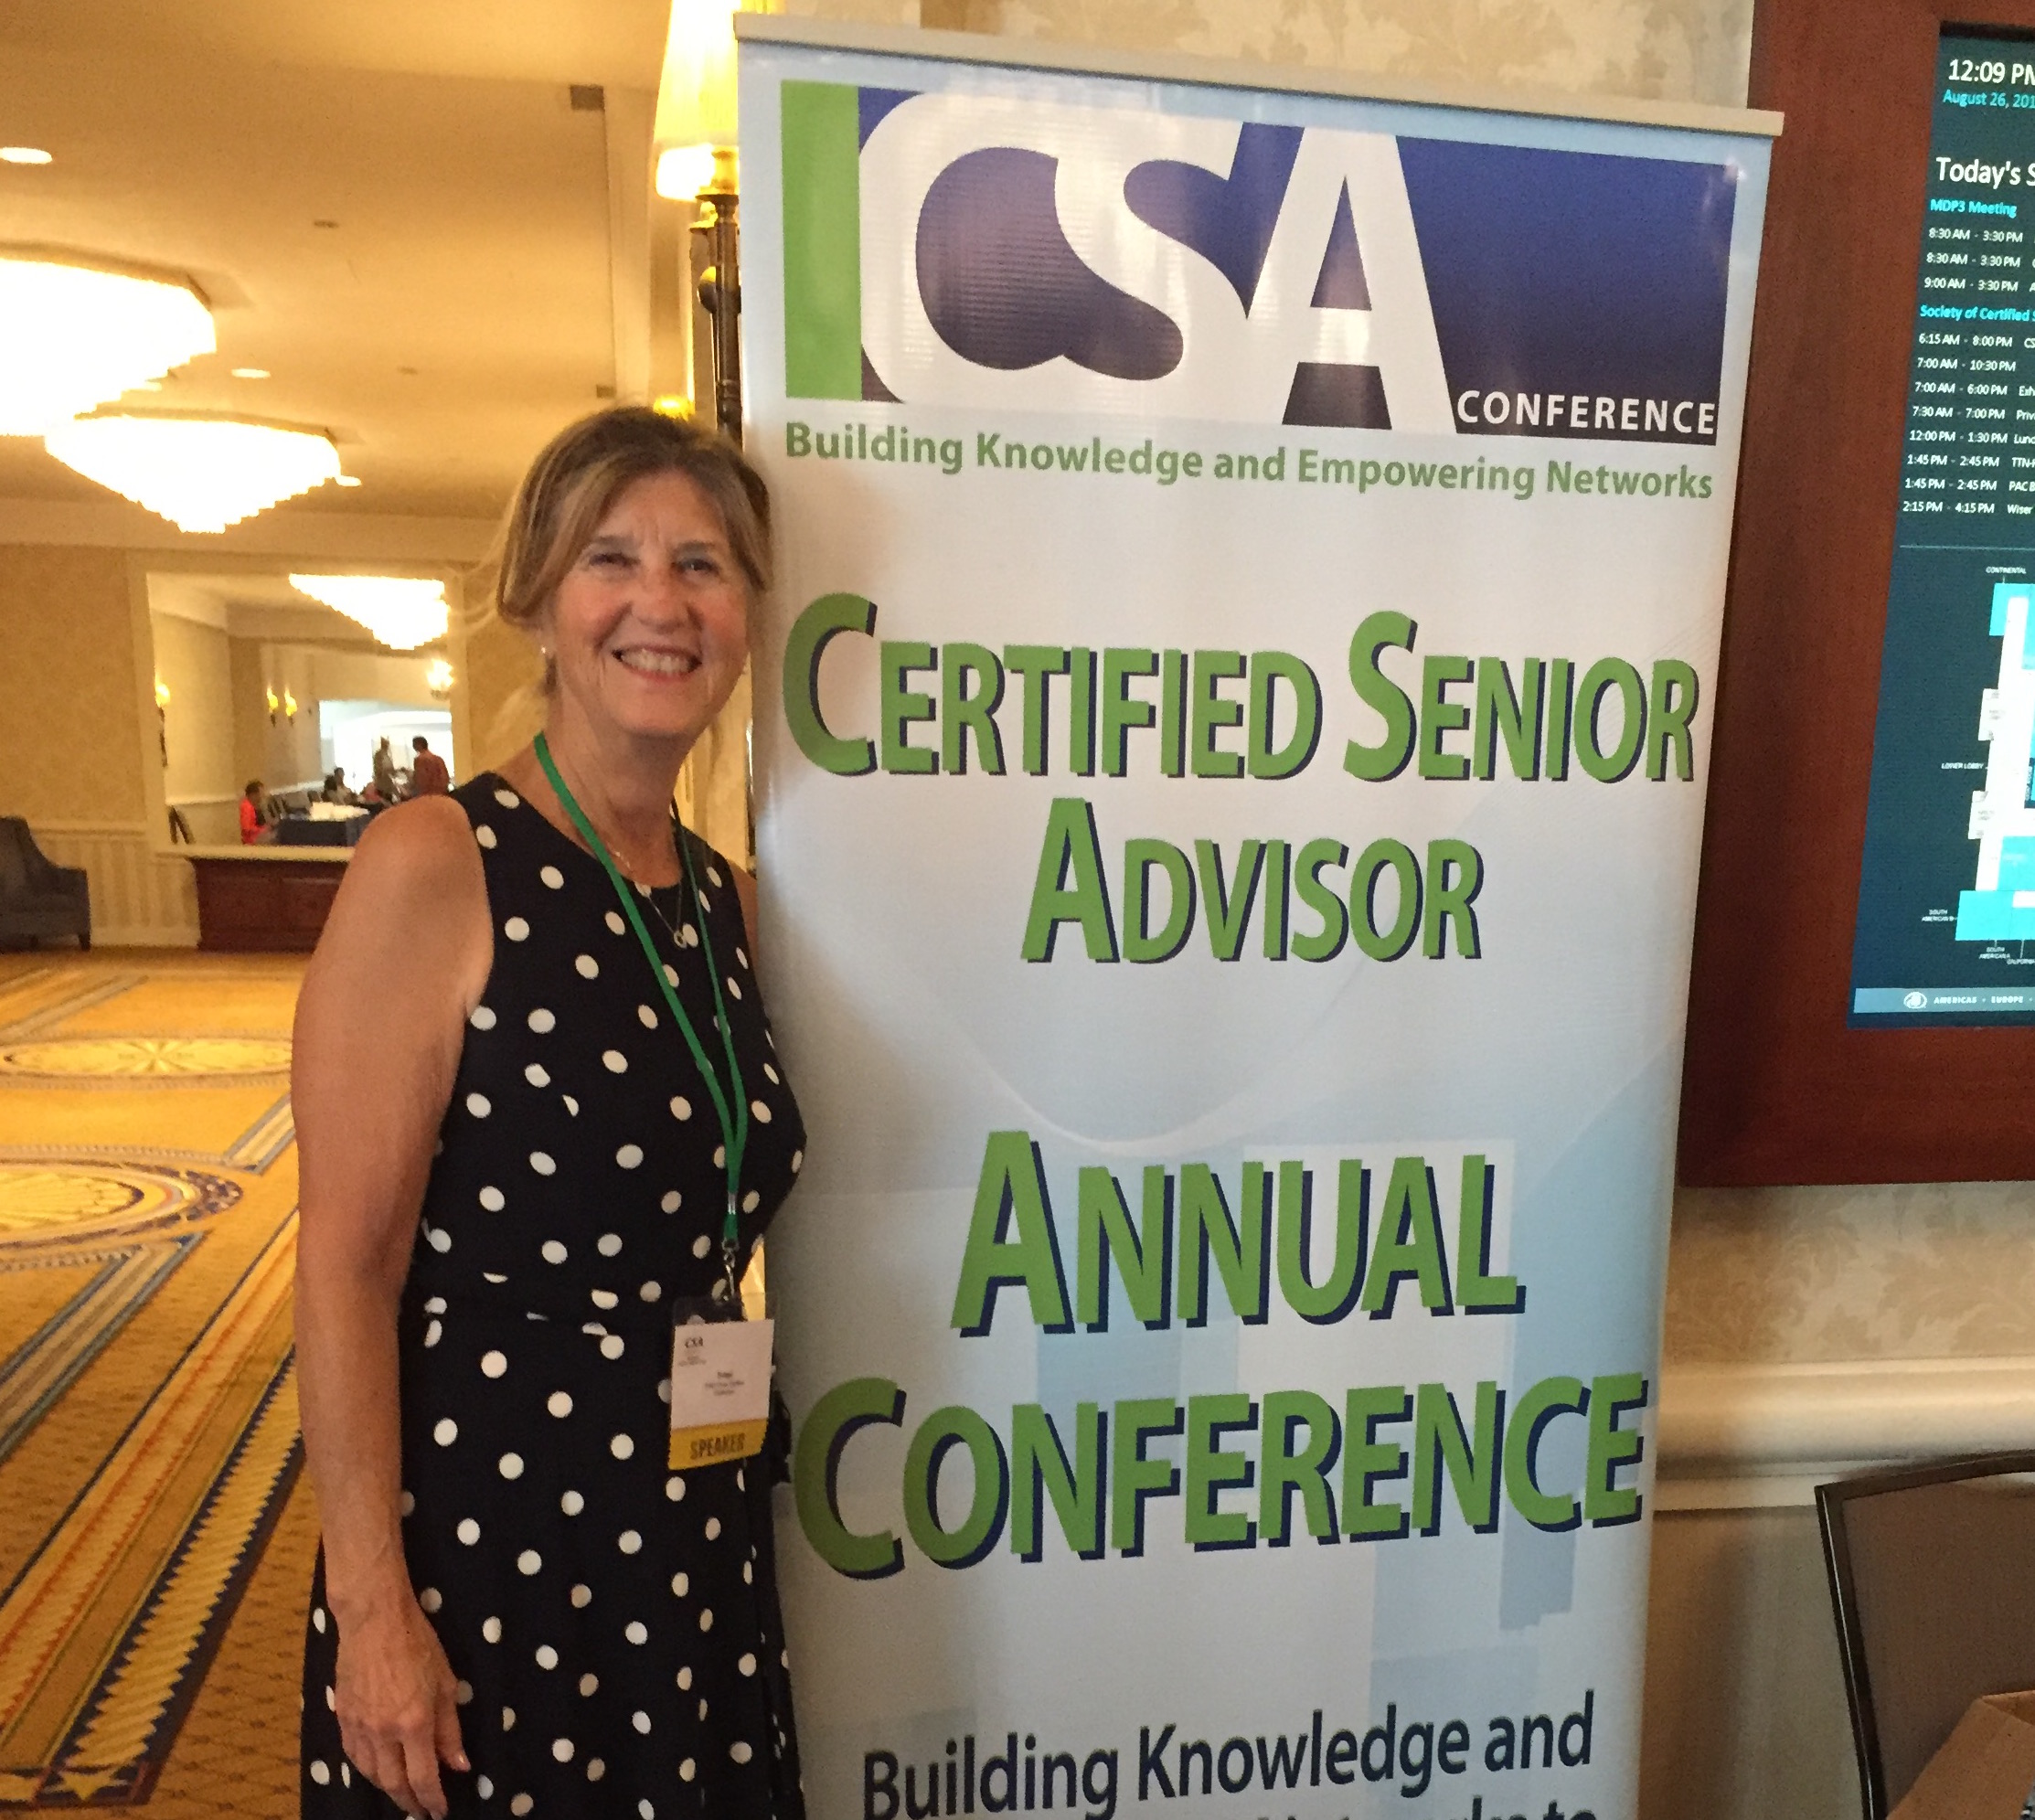 Society of Certified Senior Advisors Annual Conference